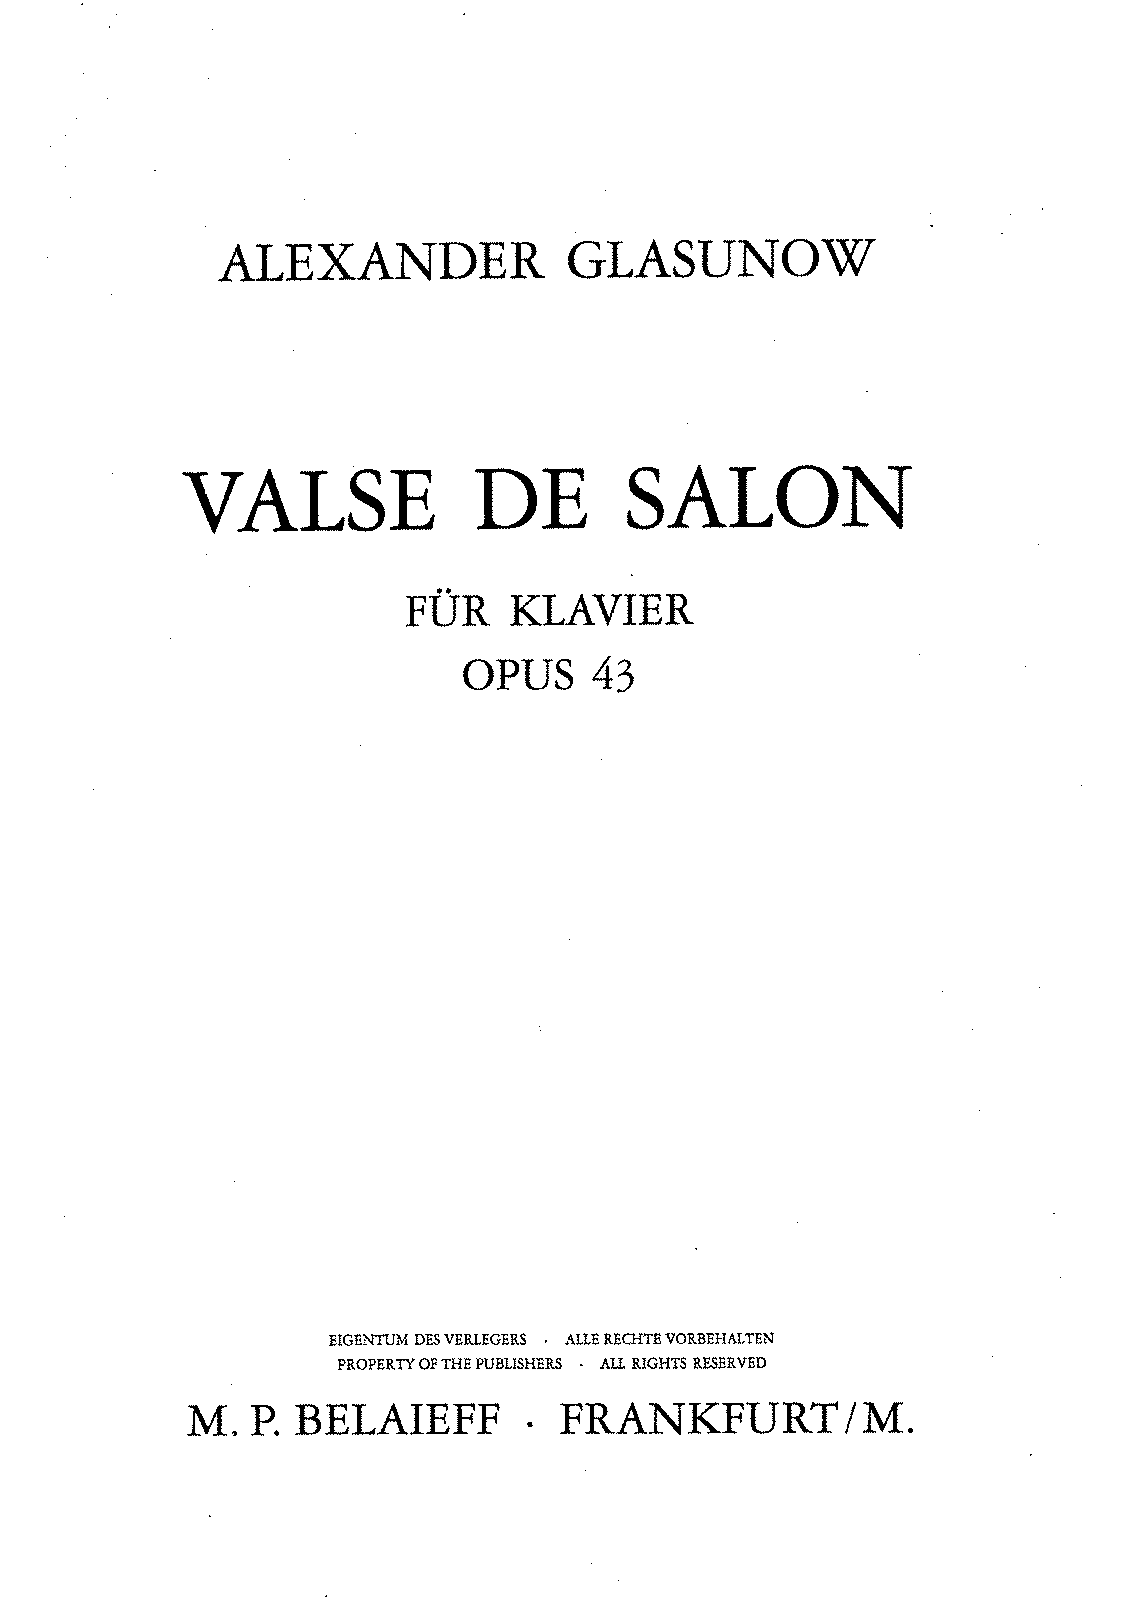 PMLP175217-Glasunow op.043 Valse de Salon Bel.pdf